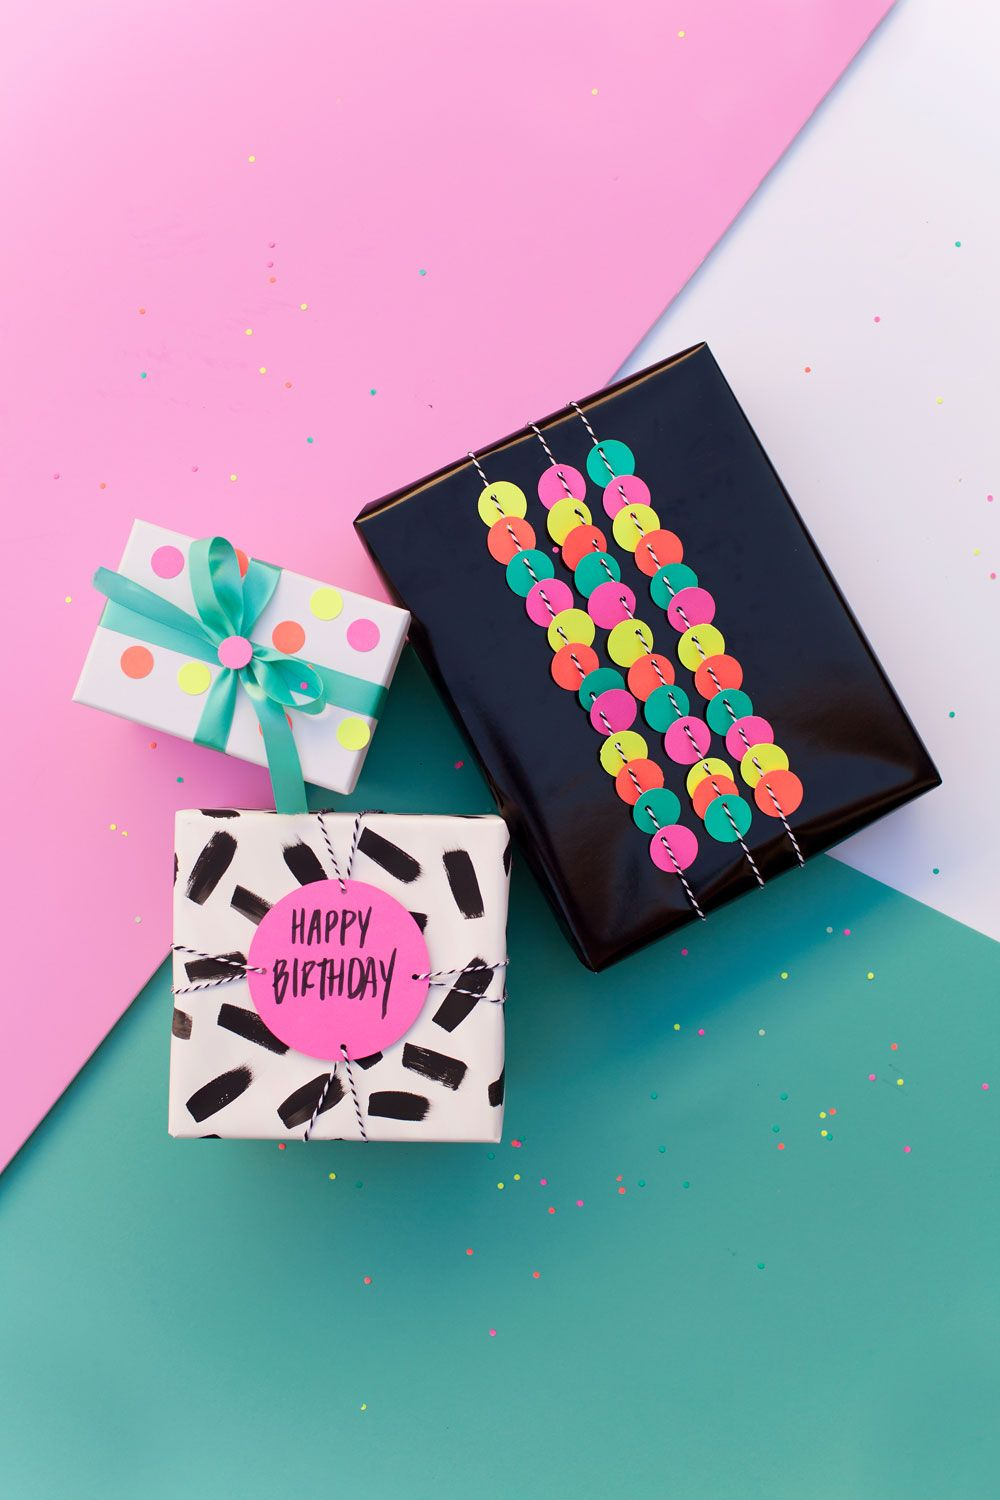 Fun gift wrap ideas using a hole punch circle punch wrapped fun gift wrap ideas using a hole punch negle Image collections